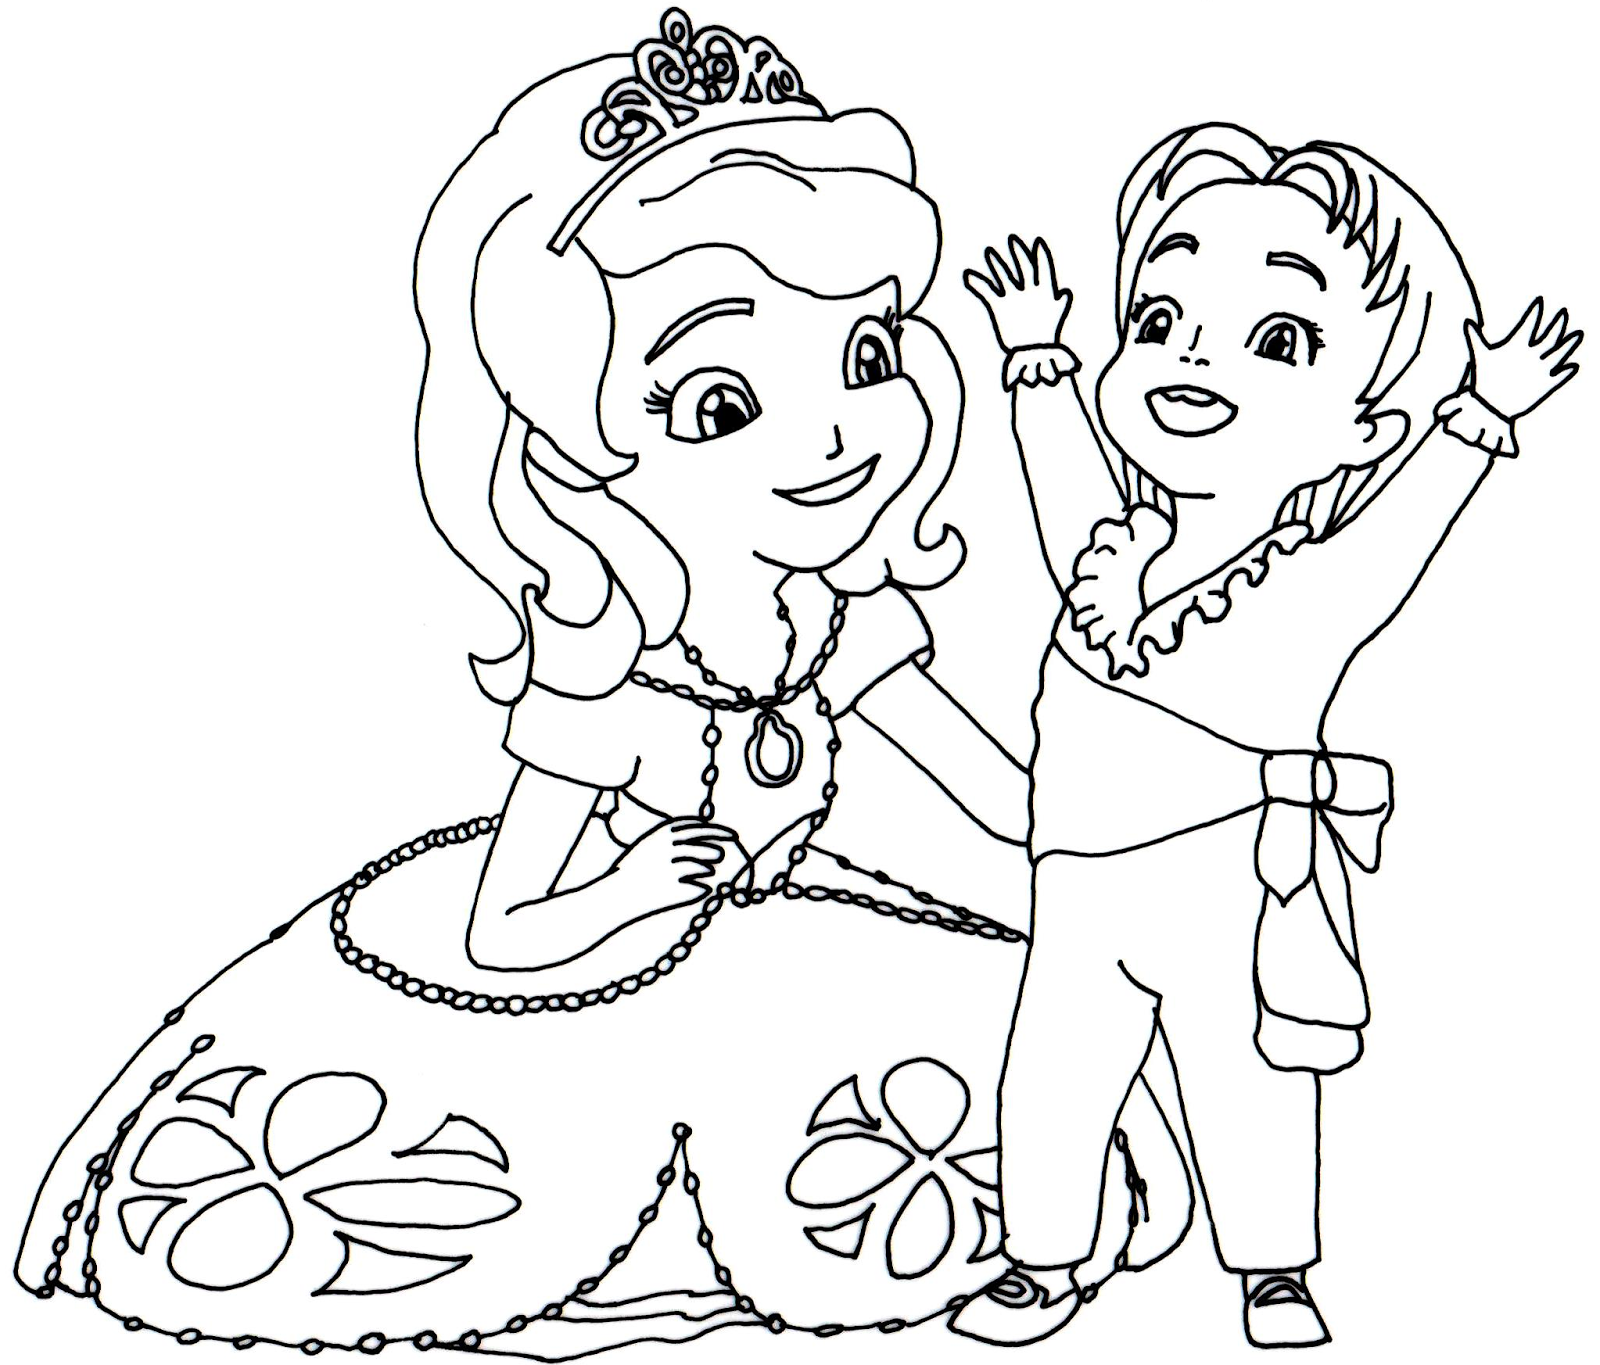 Sofia The First Coloring Pages Printable Princess Sofia Sheets Printable